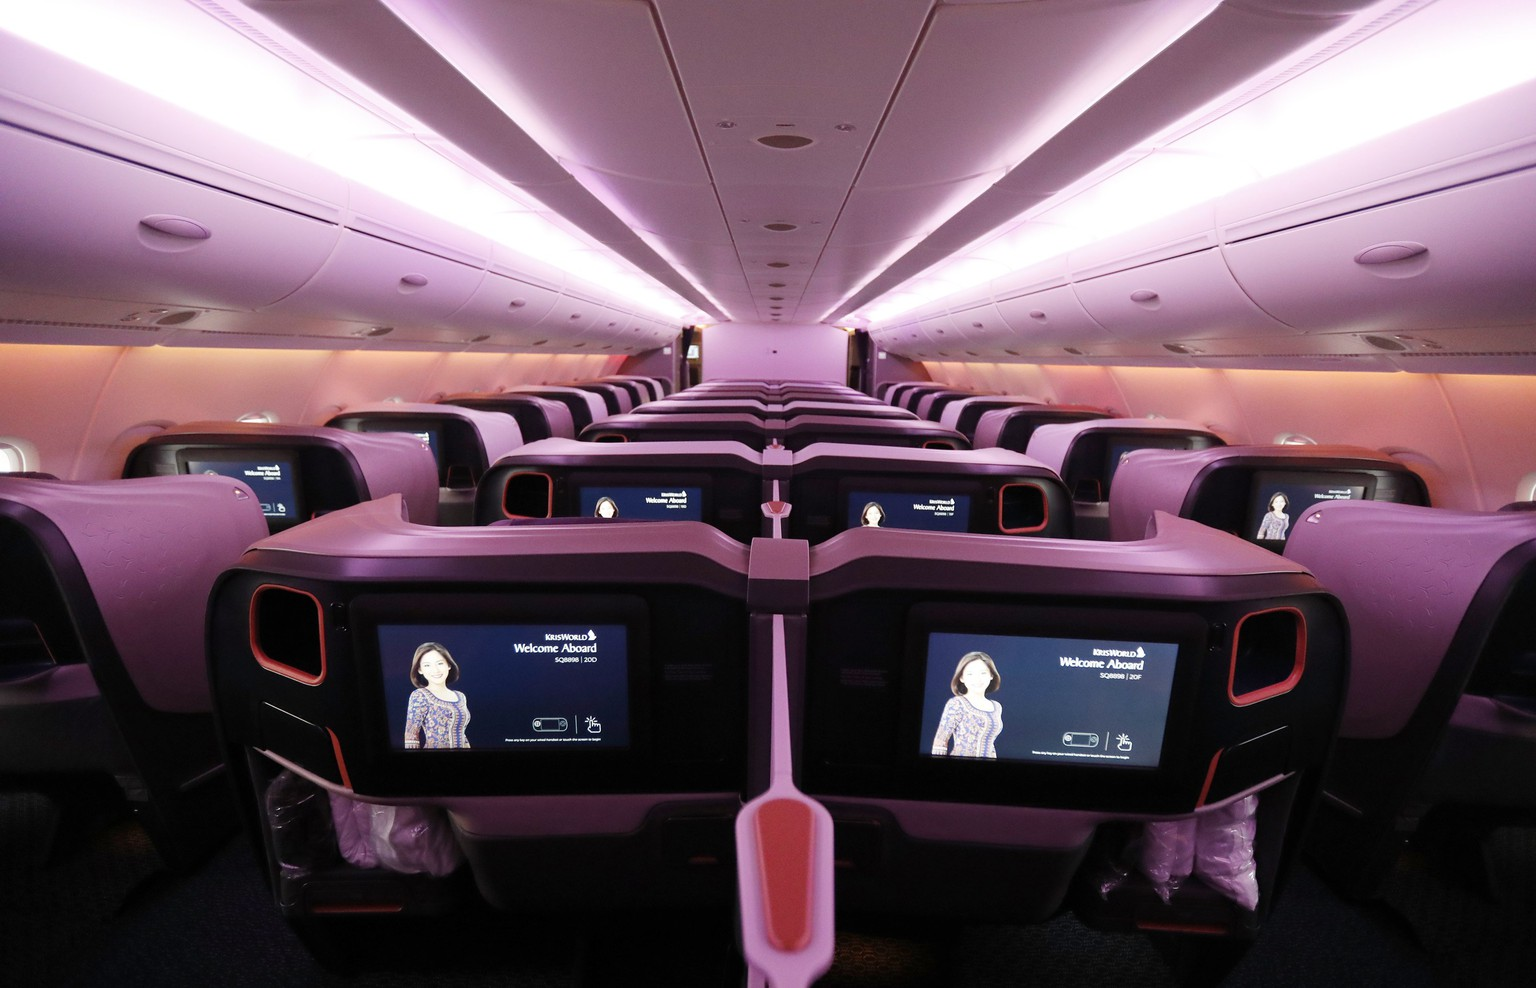 epa06386932 A view of seats in business class of the Airbus A380 aircraft for the Singapore Airlines before a ceremony at the Airbus's delivery center in Colomiers, near Toulouse, Southern France, 13 January 2017. The A380 aircraft is the first of five new planes provided with the new cockpit. Singapore Airlines is first carrier in the world to operate the new Airbus A380 planes.  EPA/GUILLAUME HORCAJUELO